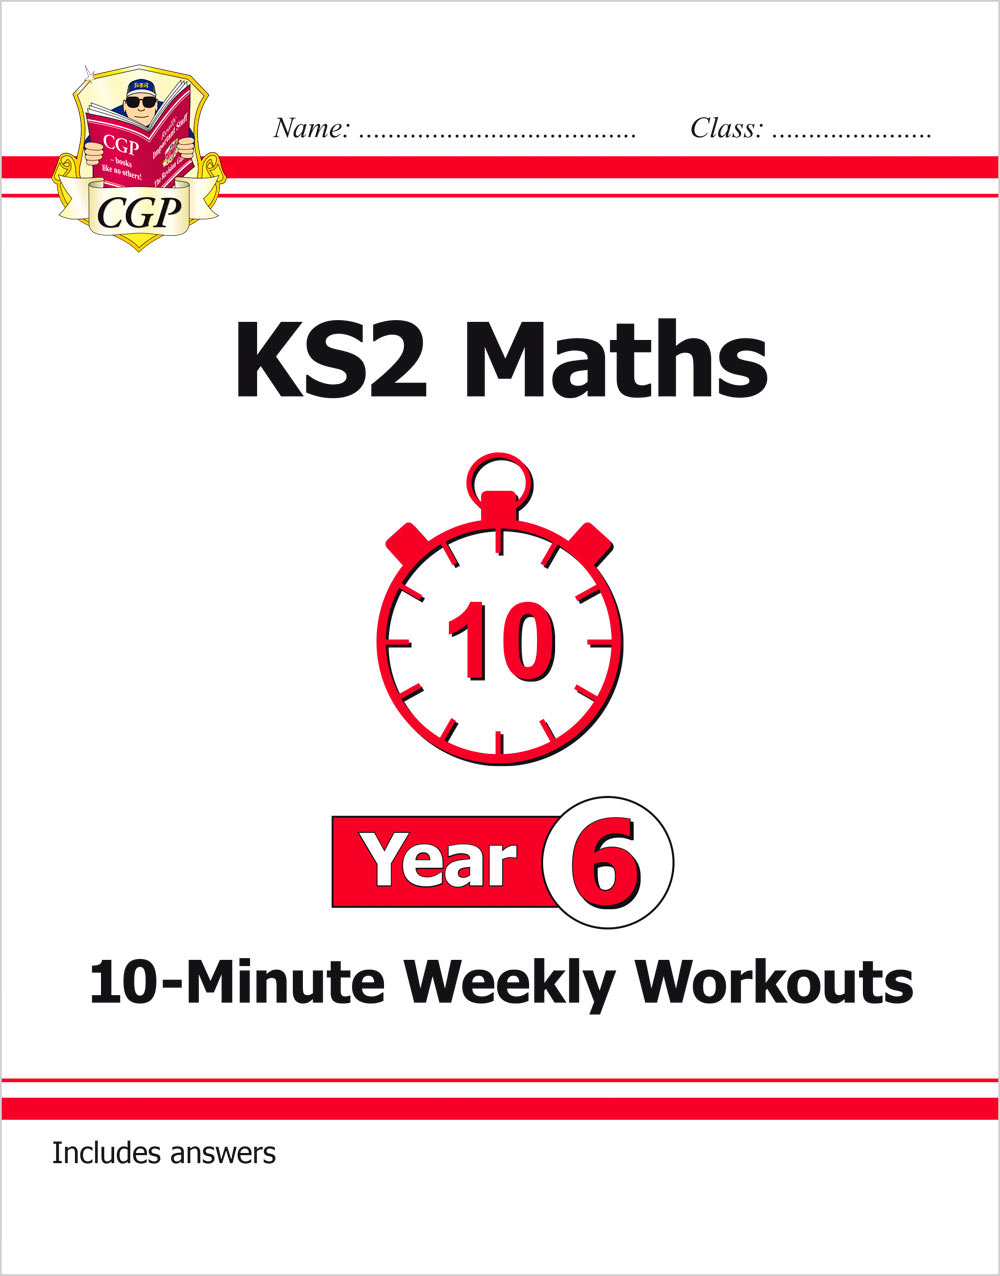 M6XW21 - New KS2 Maths 10-Minute Weekly Workouts - Year 6